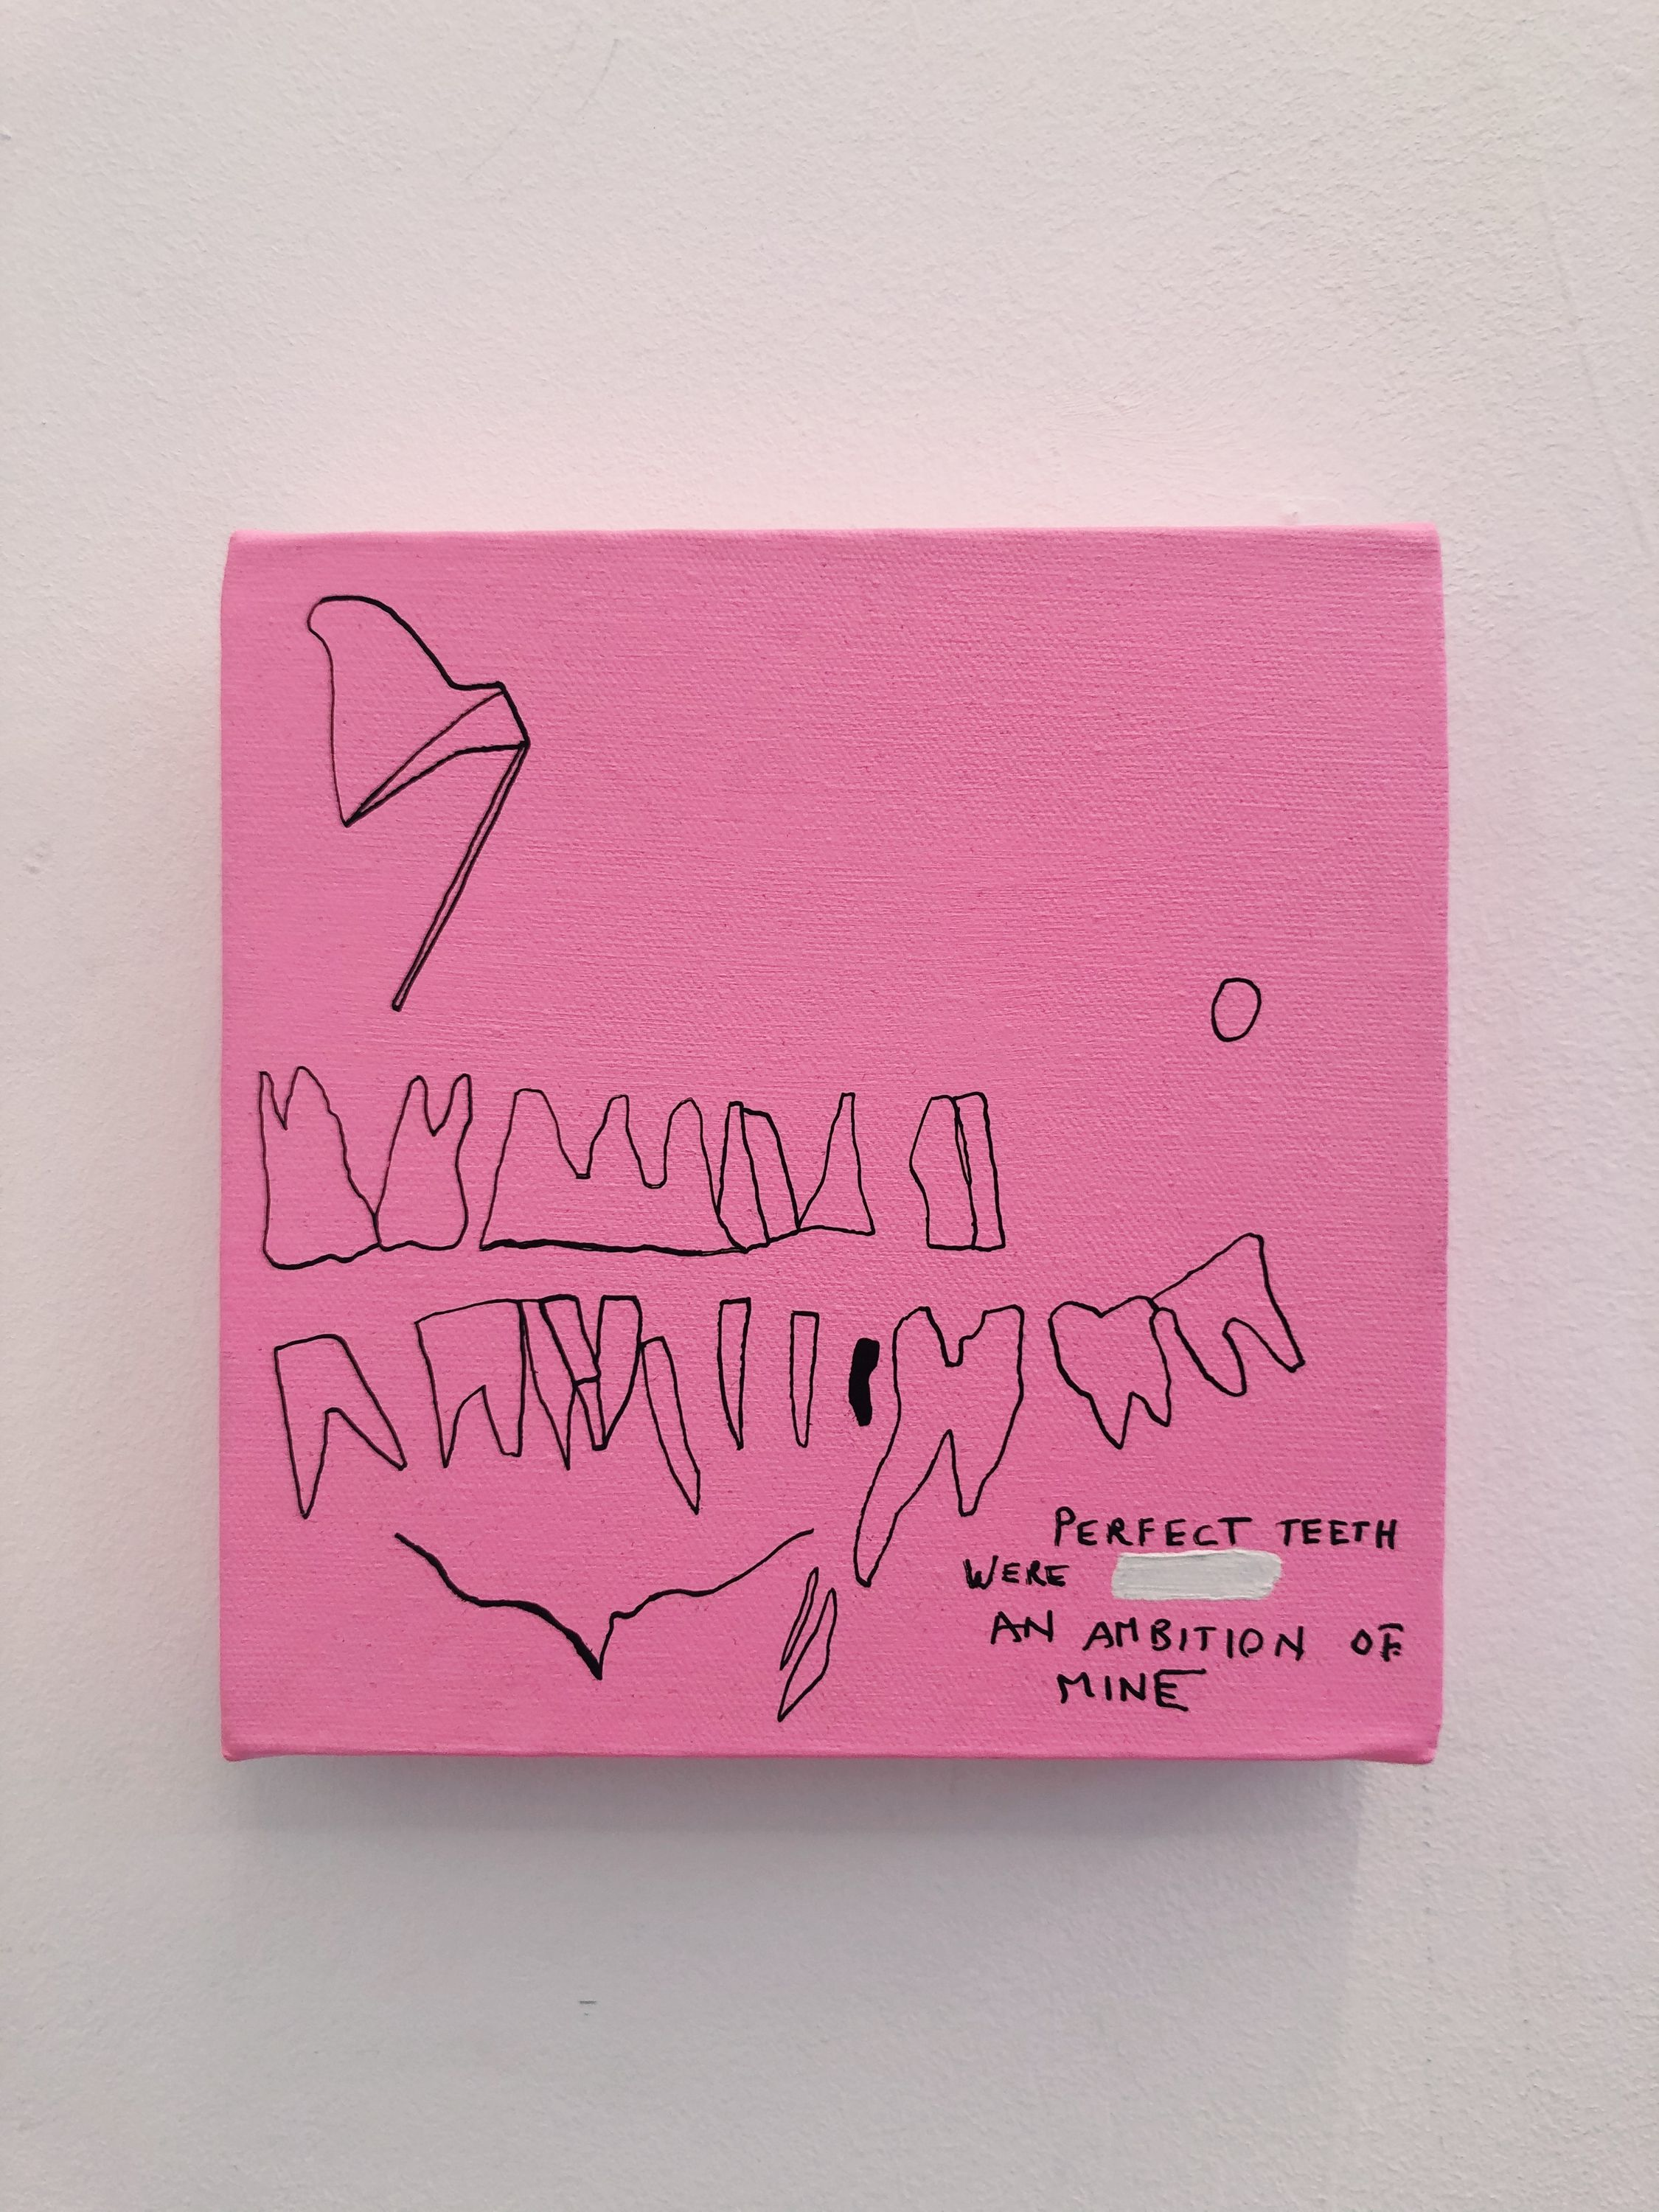 Perfect Teeth were an ambition of mine by Lei Saint James, Valerius Gallery